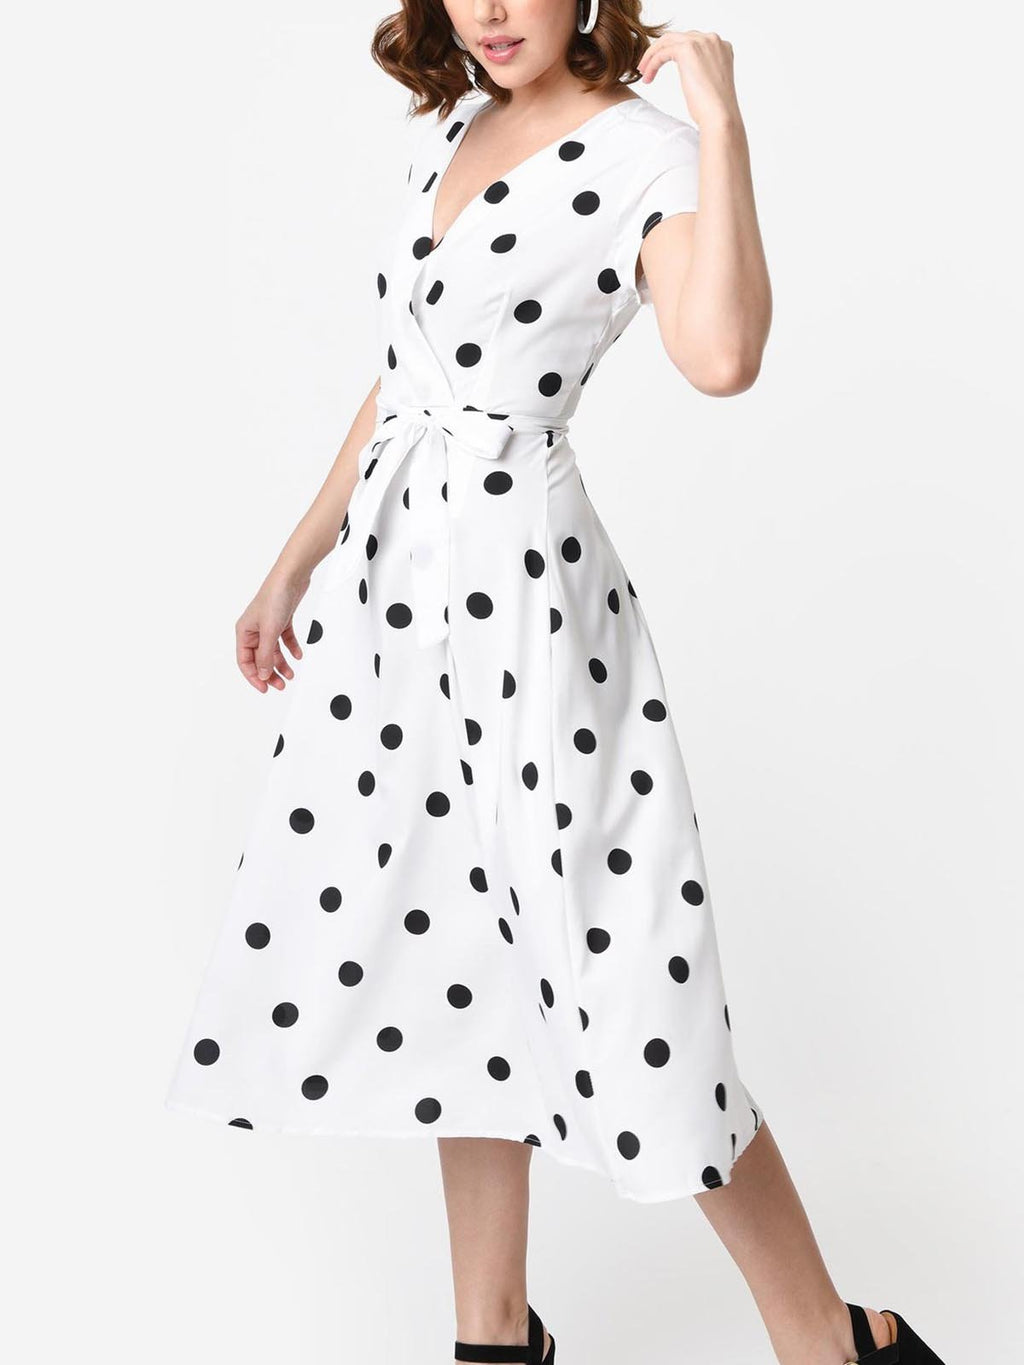 1950s Style Polka Dot Cap Sleeve Swing Dress